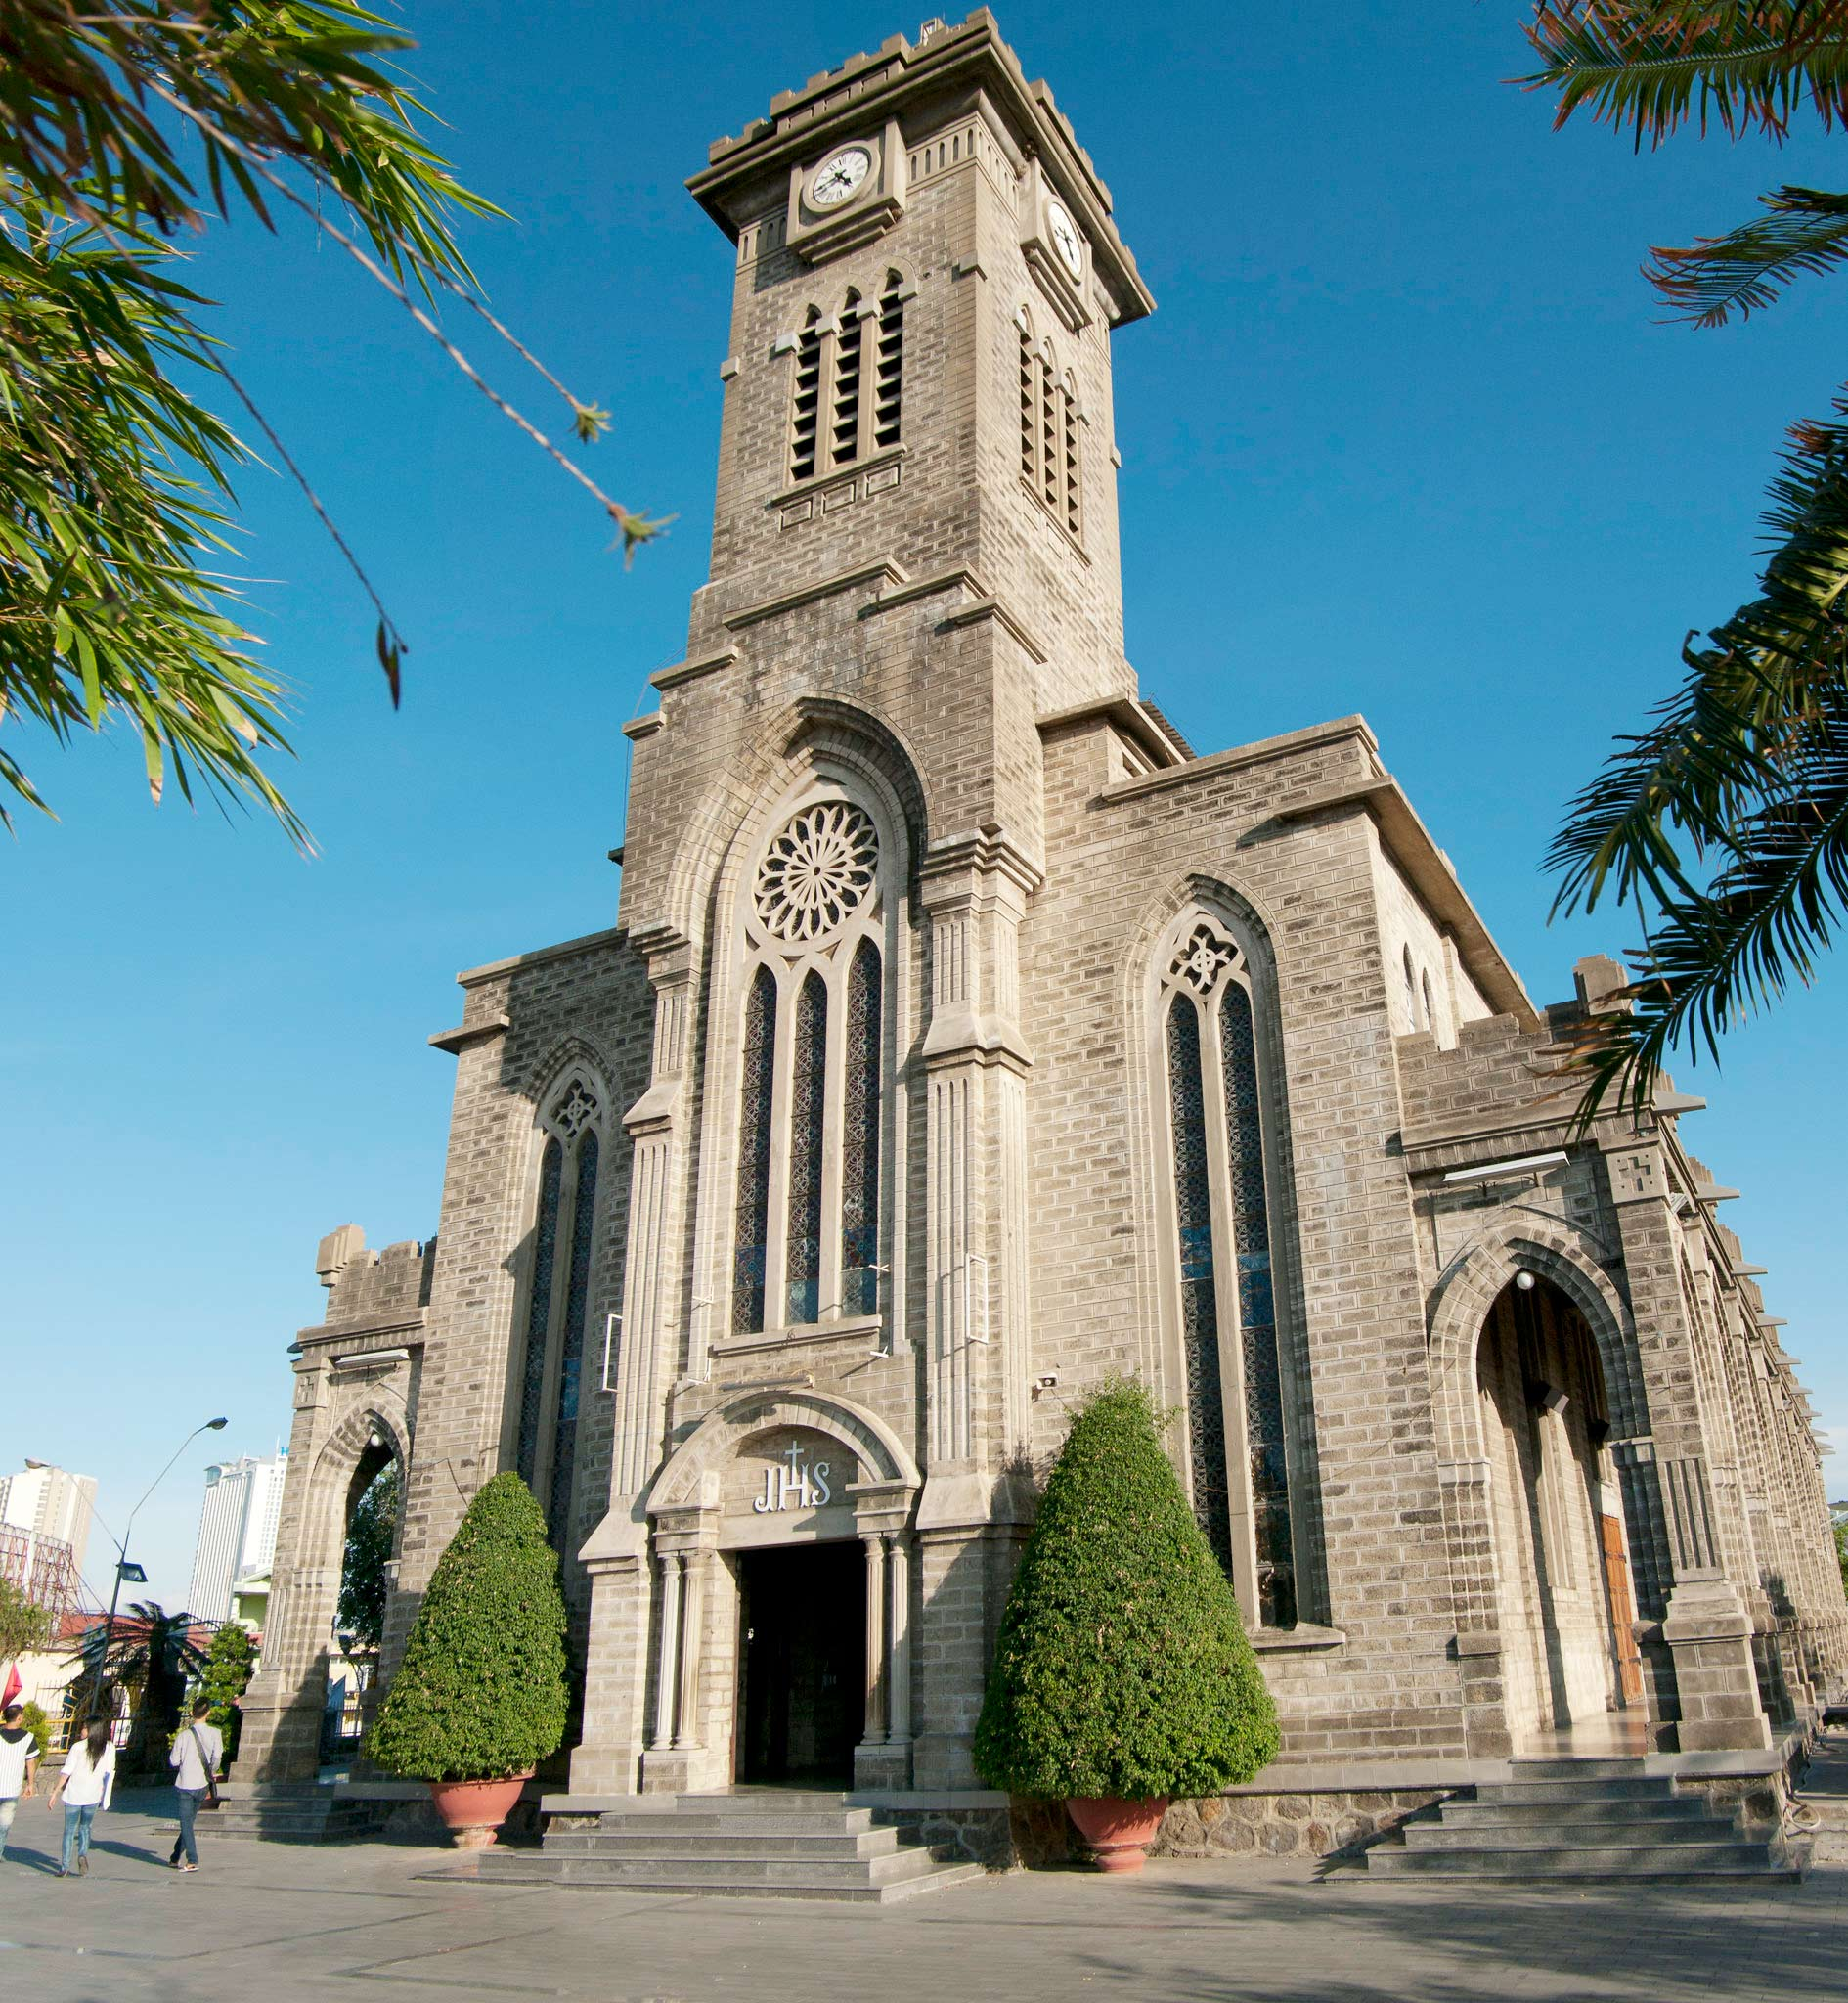 Nha Trang Stone Cathedral - the perfect combination of the French Gothic style and distinct Vietnamese architecture elements.